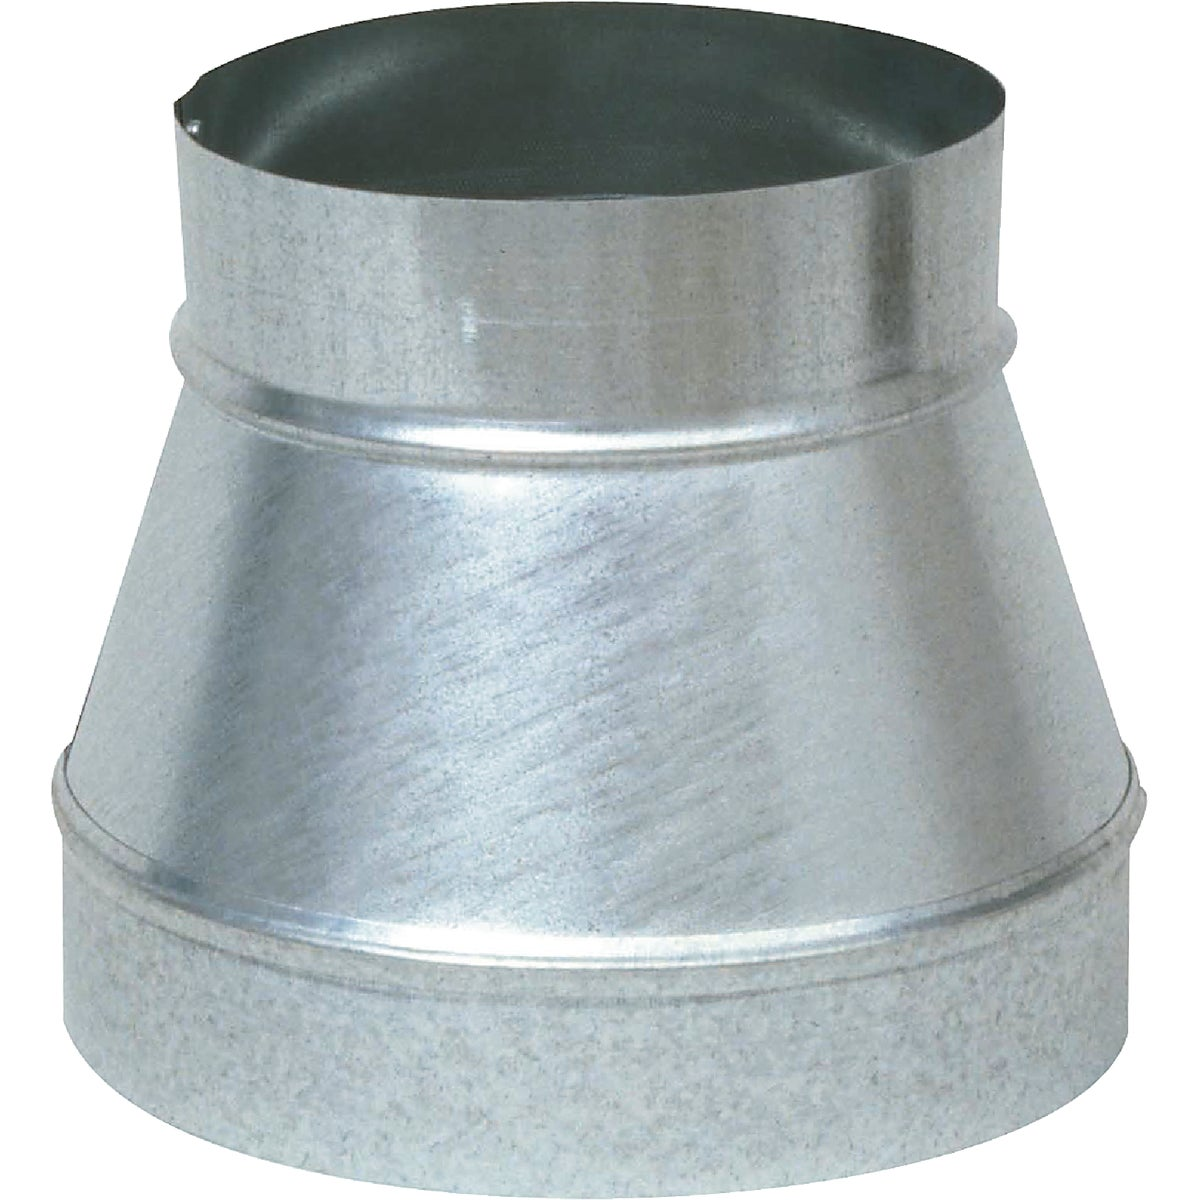 7-6 INCREASER/REDUCER - GV0787 by Imperial Mfg Group